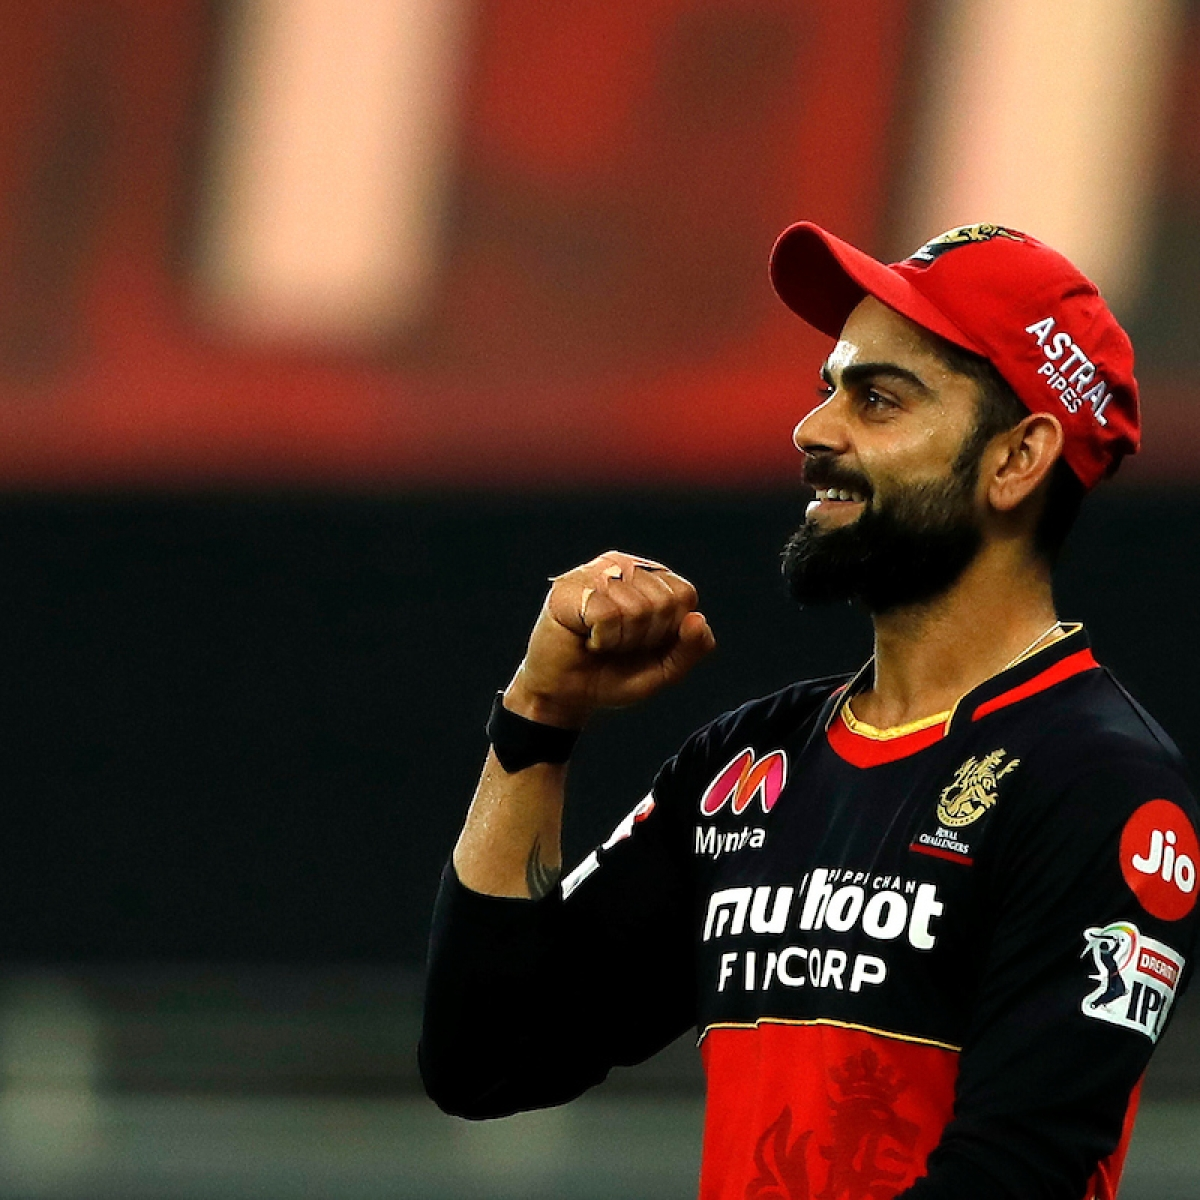 'Could Rohit win IPL titles with RCB?': Aakash Chopra defends Virat Kohli